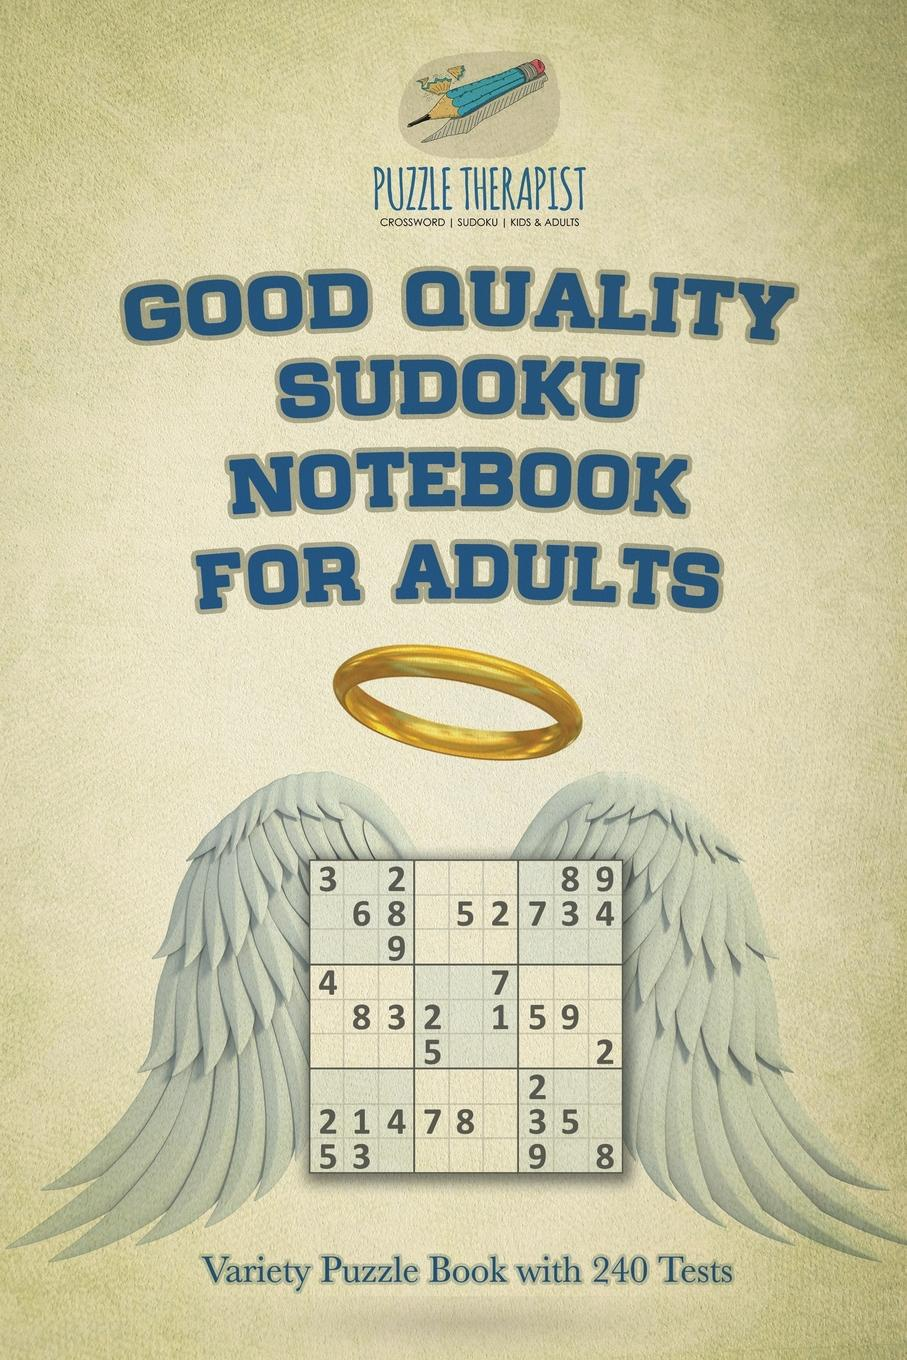 Puzzle Therapist Good Quality Sudoku Notebook for Adults . Variety Puzzle Book with 240 Tests puzzle therapist one a day sudoku for the utterly obsessed large print puzzles for adults